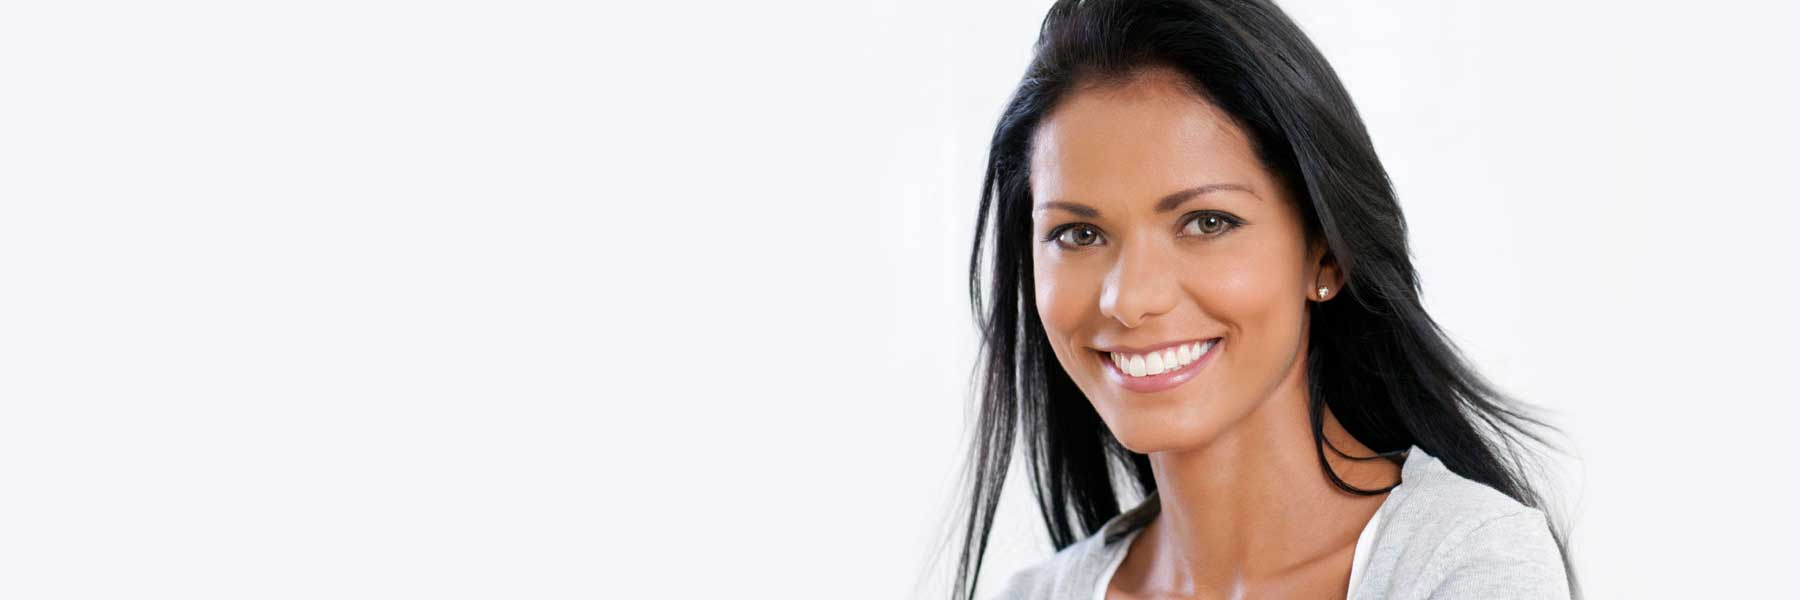 Dentofacial Development | Dentist